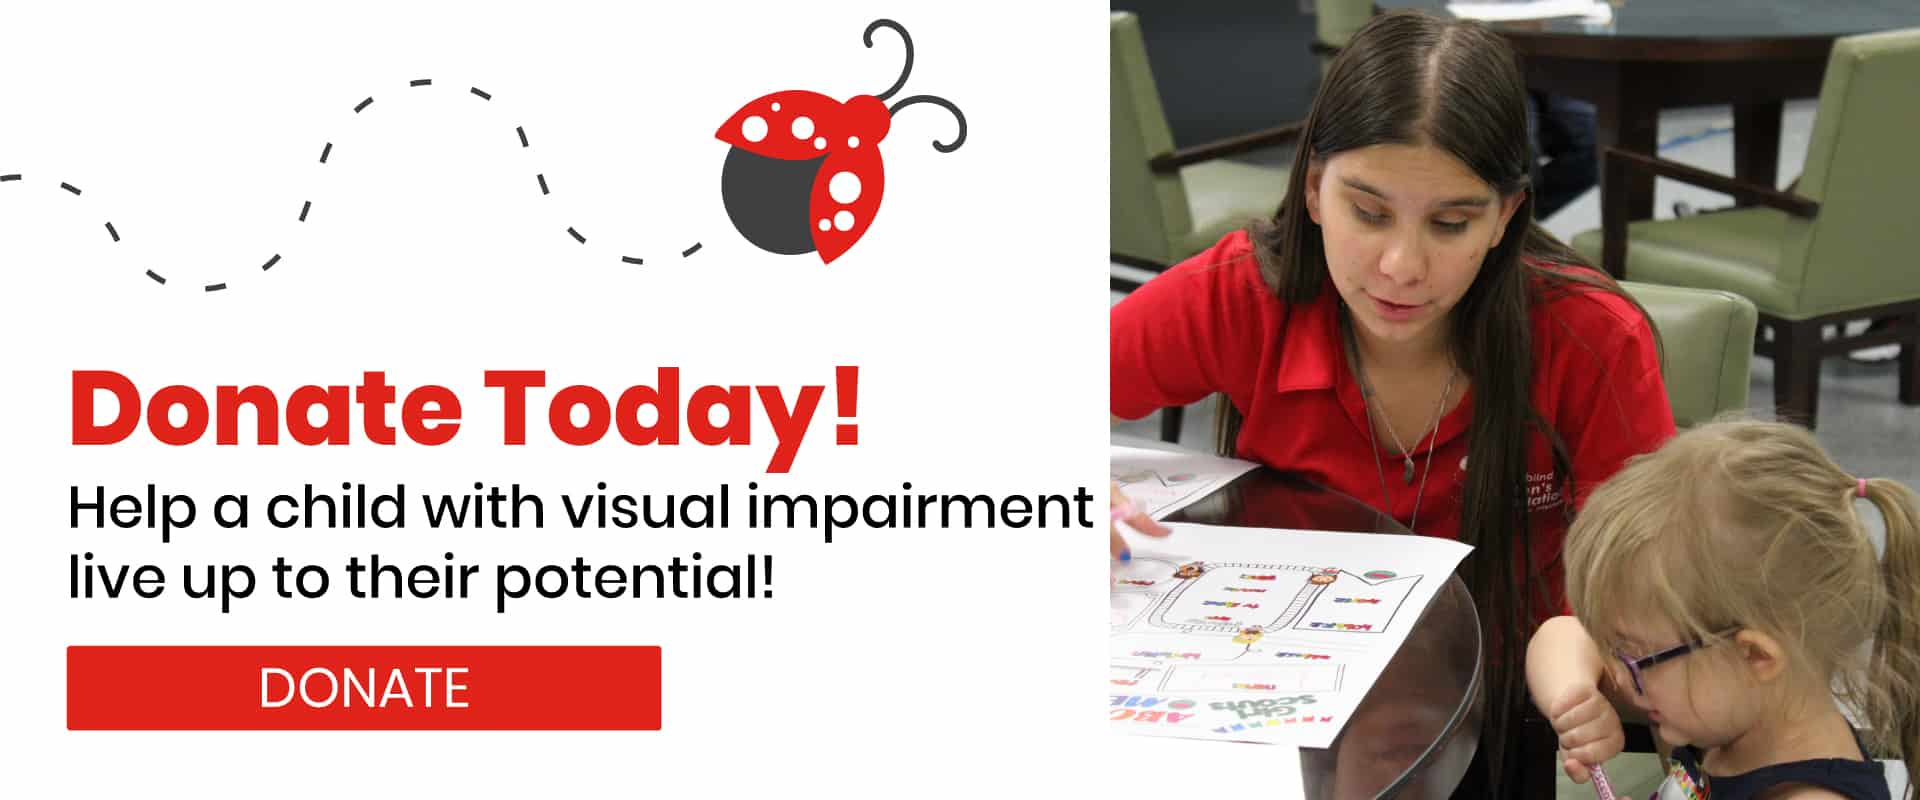 Donate today to help a child with visual impairment live up to their potential